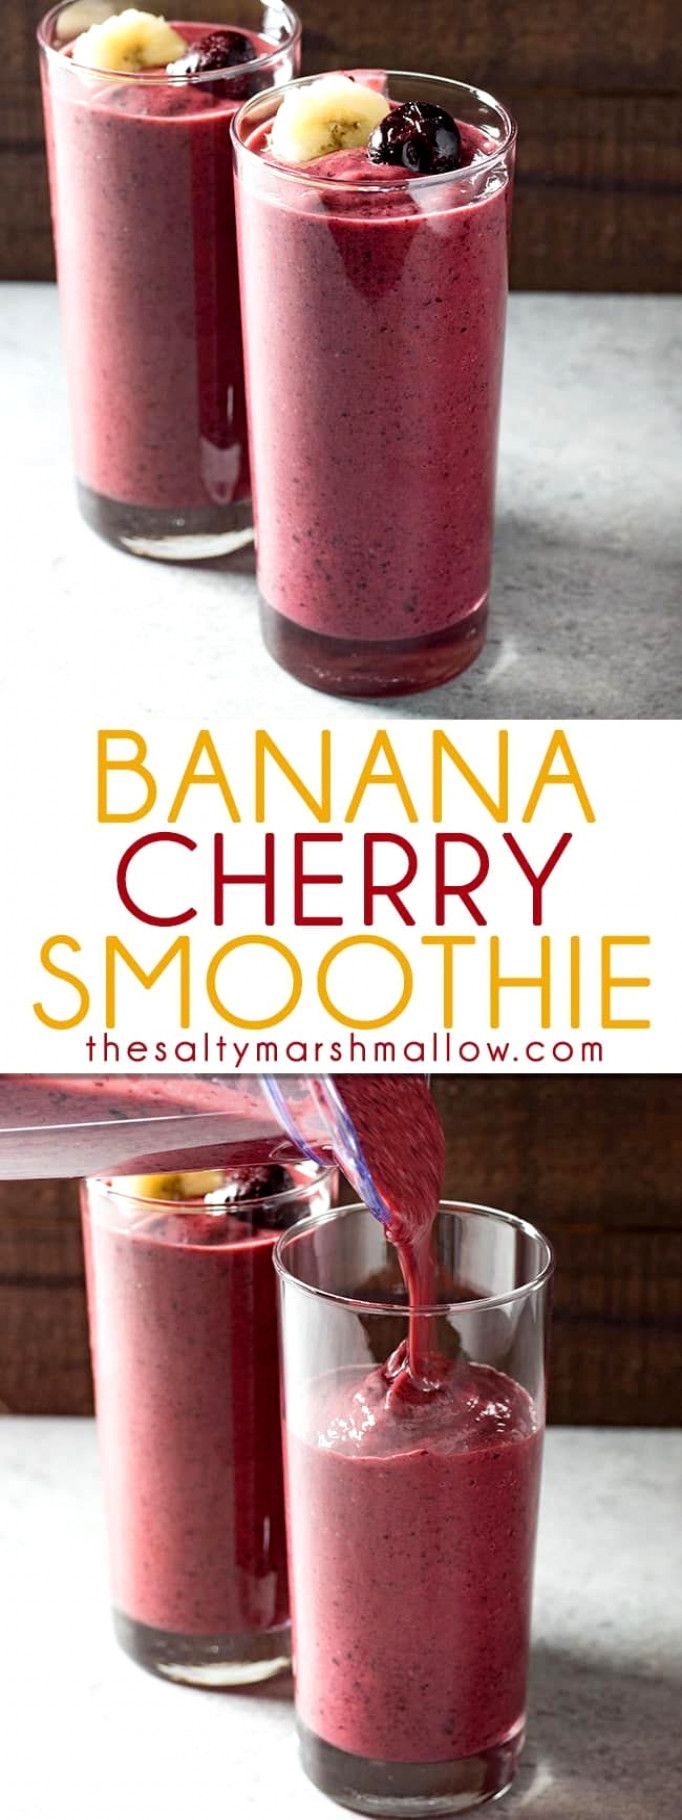 Banana Cherry Smoothie images